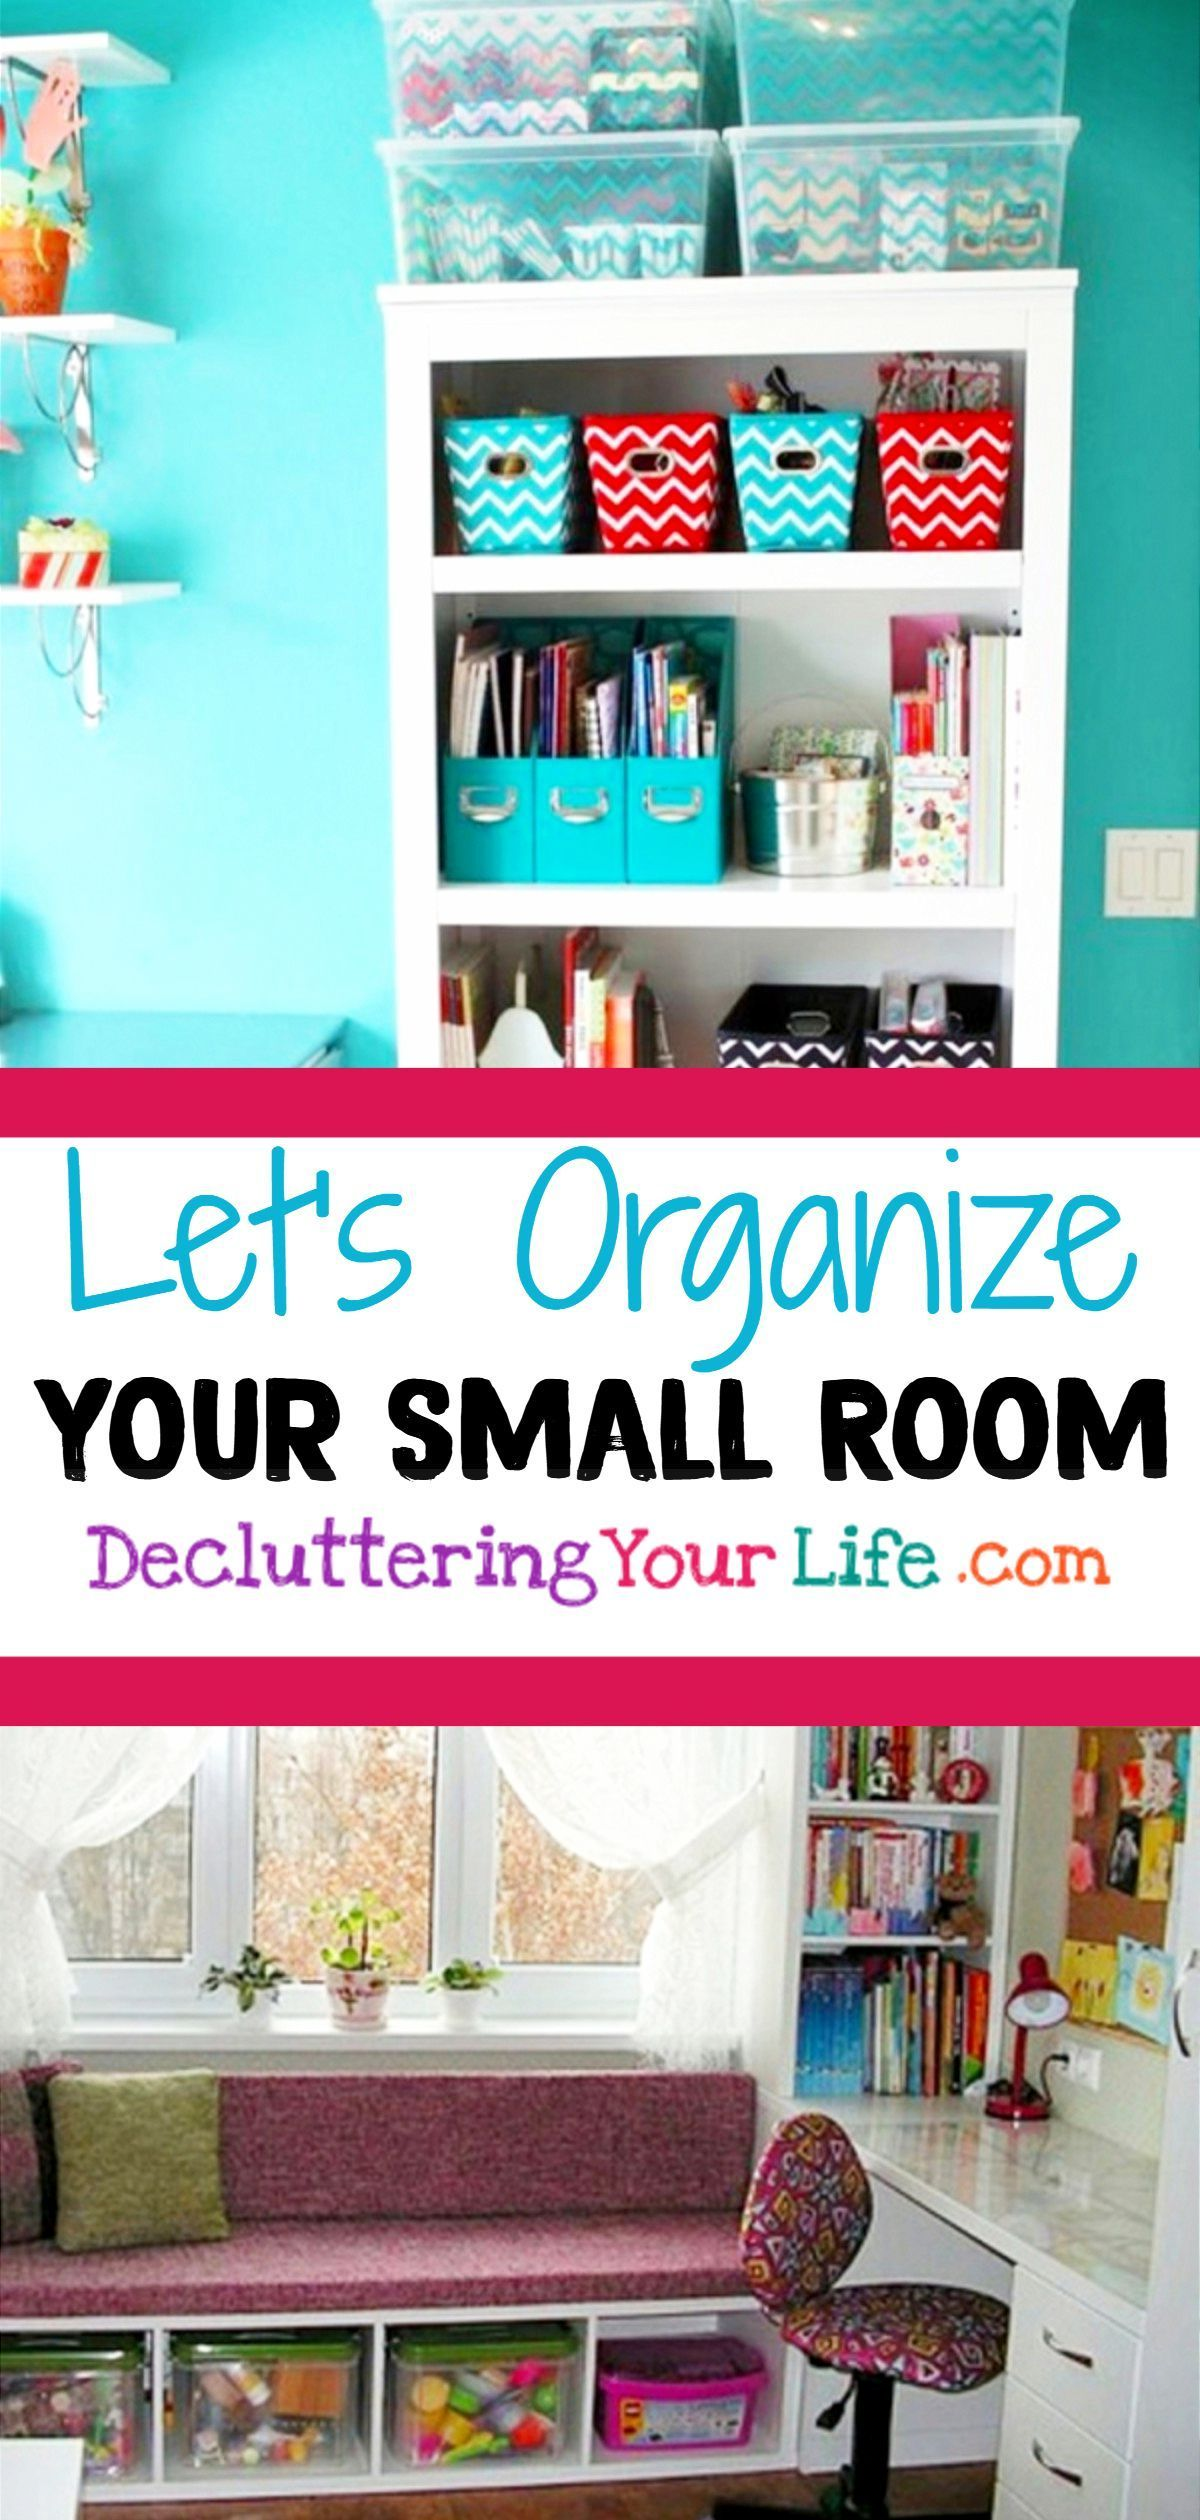 Storage Hacks! How To Organize a Small House With NO Storage Space